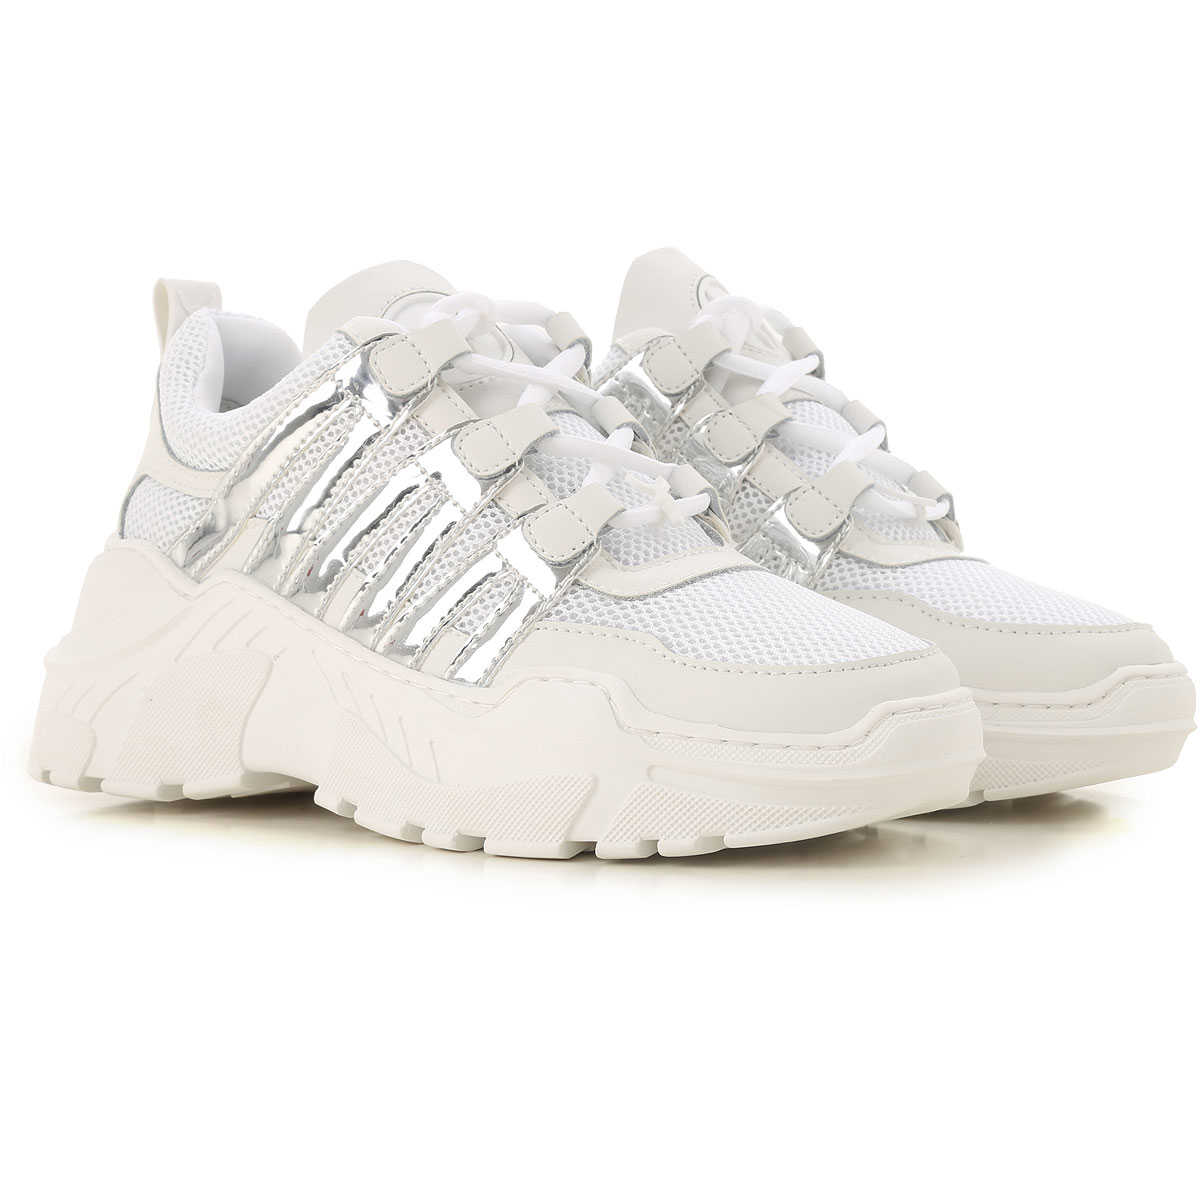 Windsor Smith Sneakers for Women On Sale White SE - GOOFASH